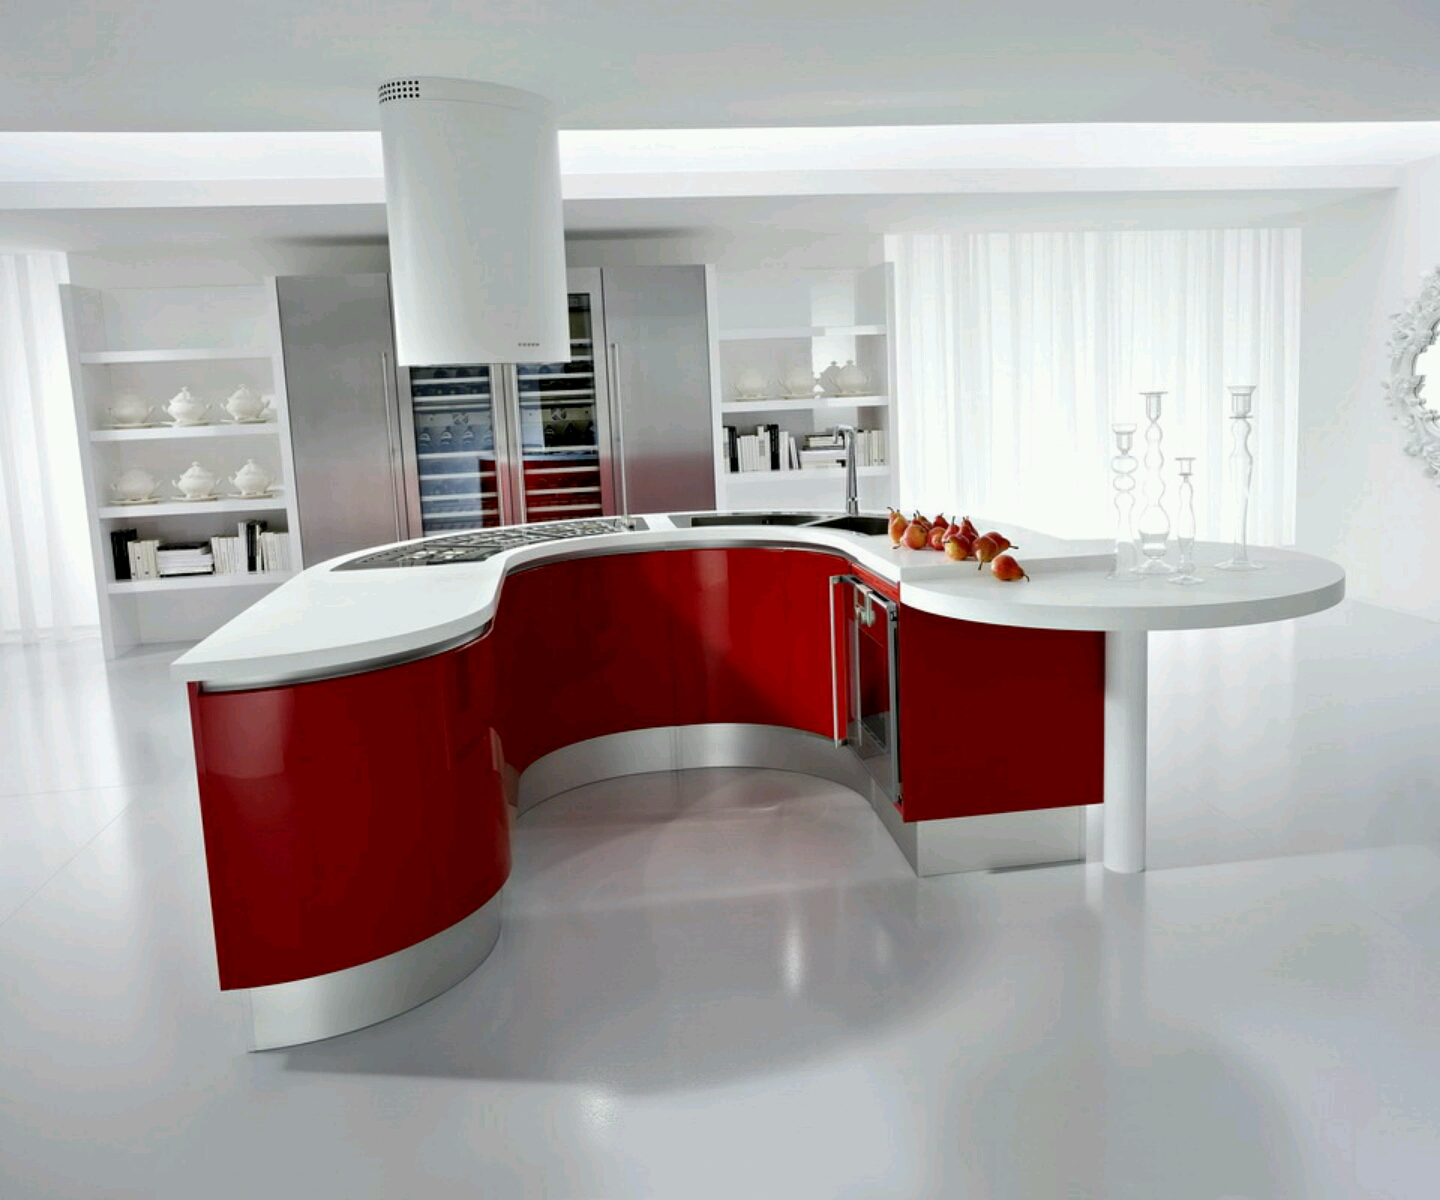 Modern kitchen cabinets designs ideas furniture gallery for Modern cabinets kitchen